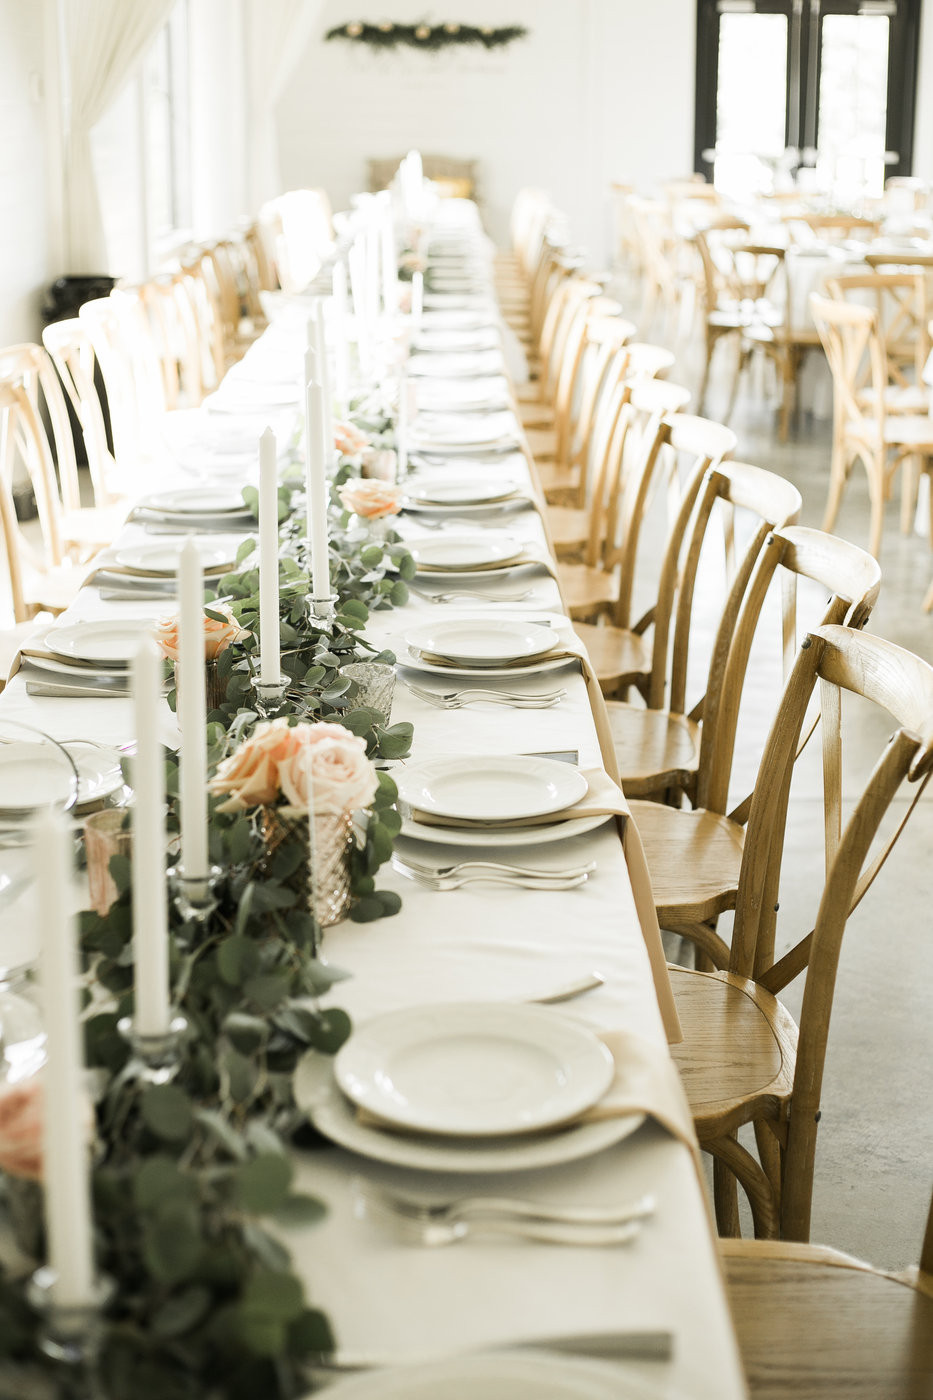 Candles and greenery garland with roses by studio bloom iowa on long banquet tables for wedding guests at ashton hill